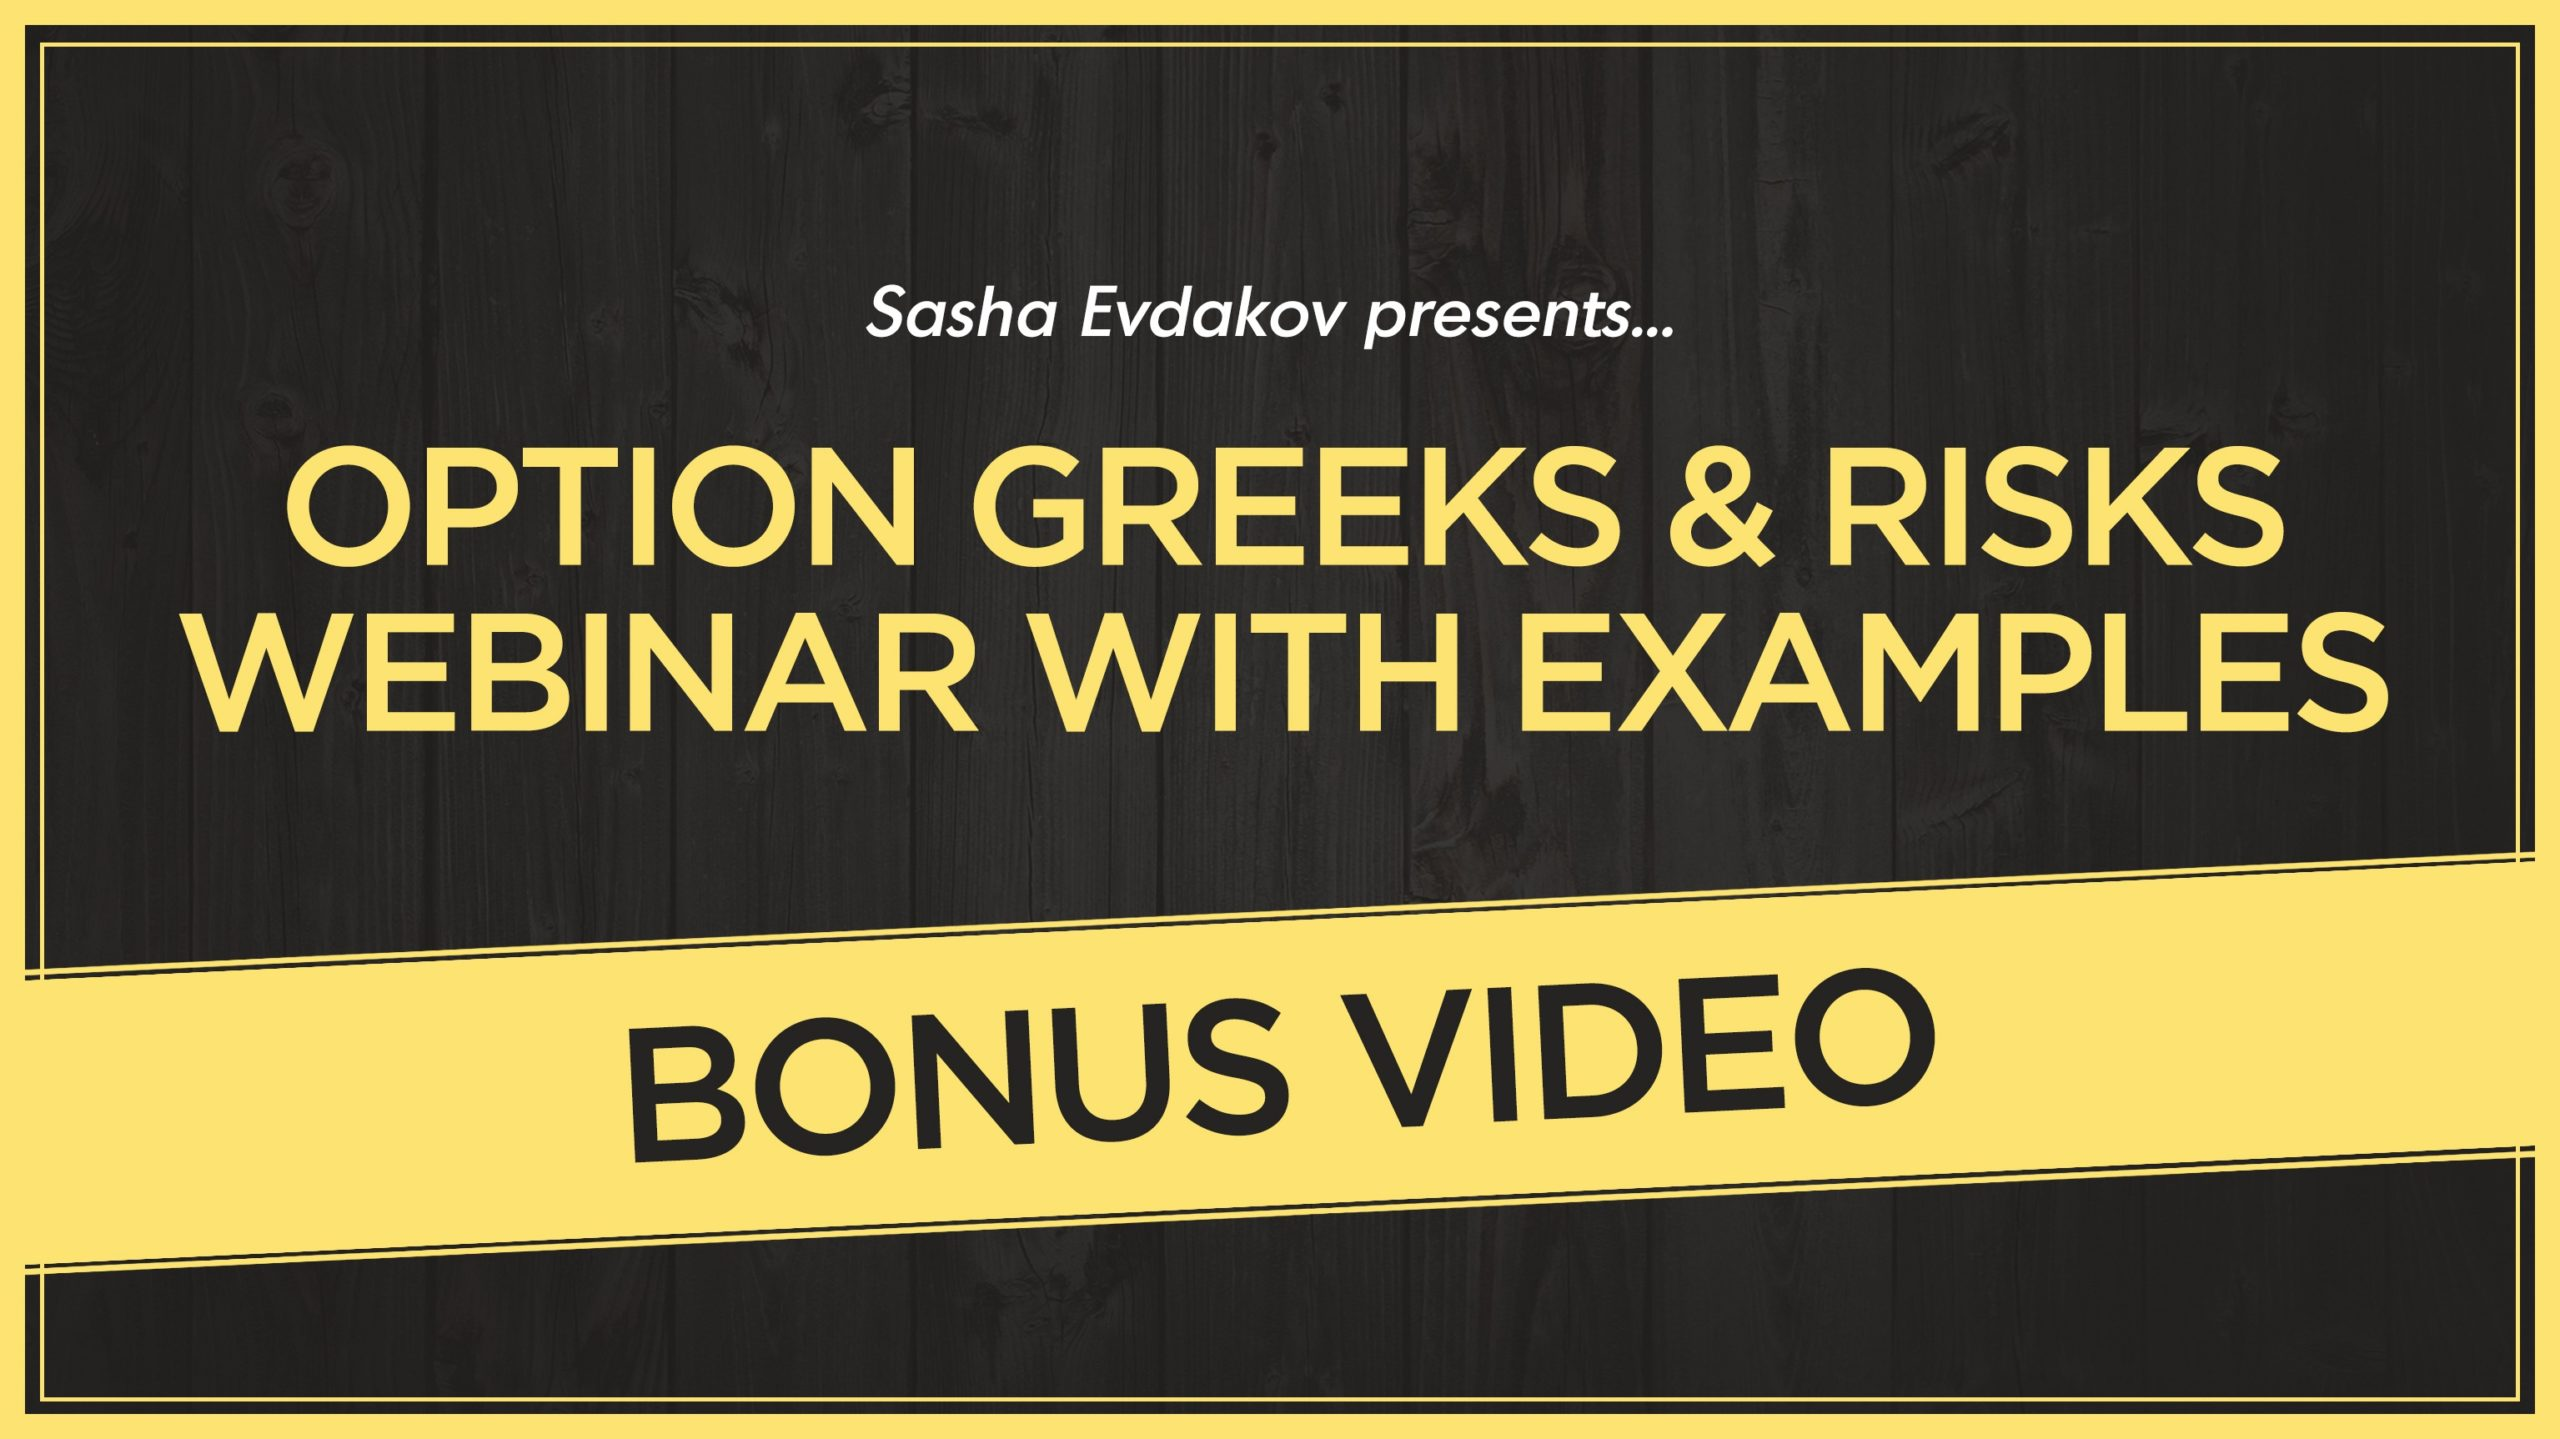 Bonus Video for Option Greeks & Risks Webinar with Example Thumbnail